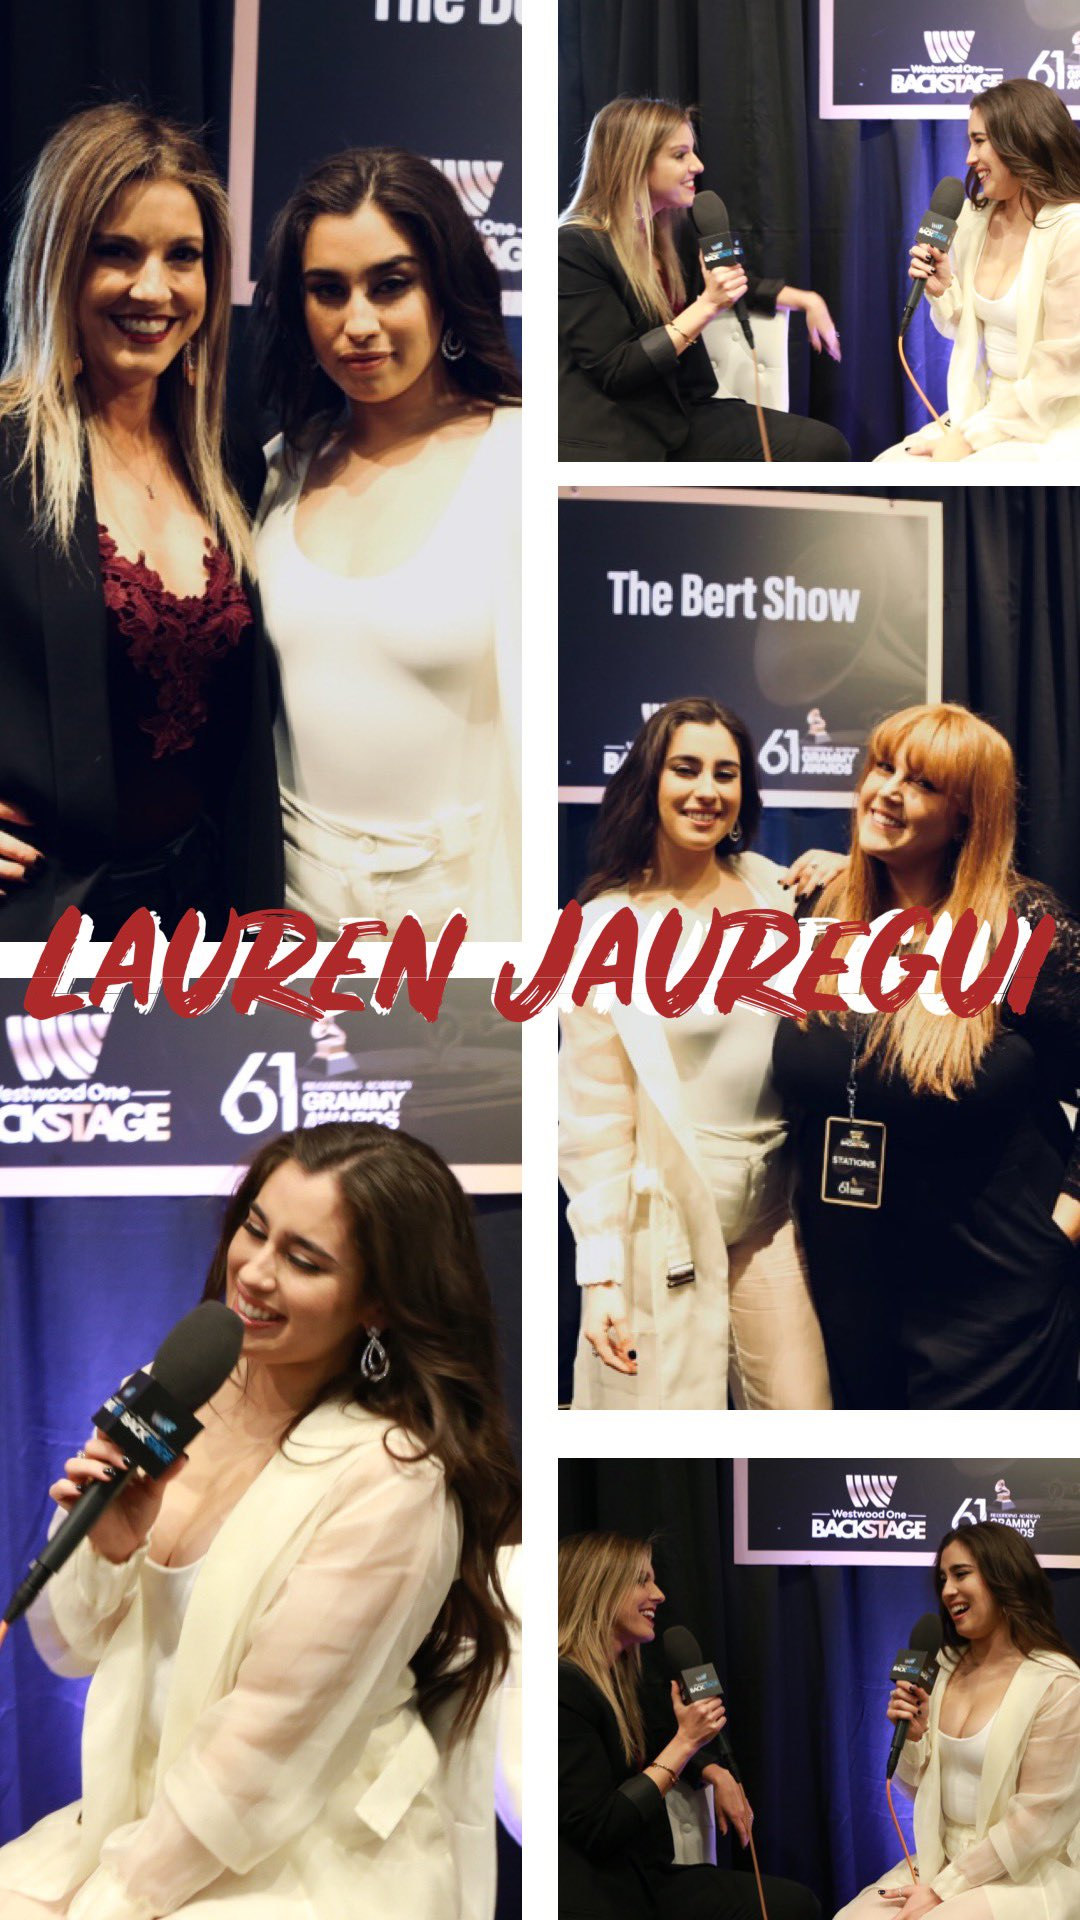 Thanks for the awesome interview, @LaurenJauregui! https://t.co/KAB01aWBr1 #GRAMMYs   #WestwoodOne https://t.co/sLDCkSkpF2